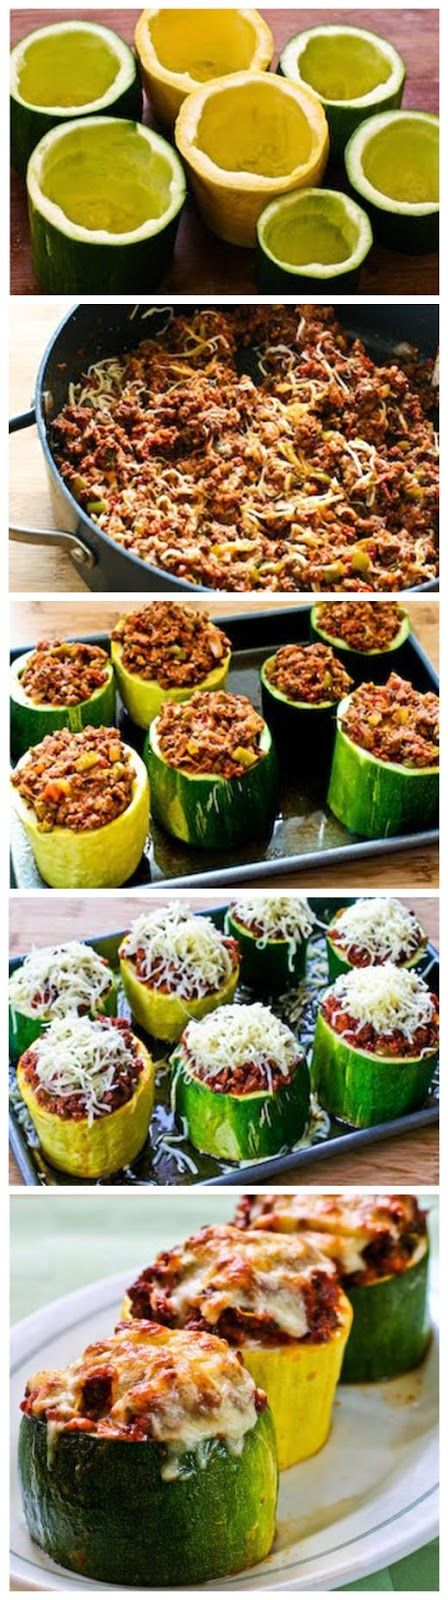 Stuffed Zucchini Cups I used fat free mozzarella cheese and 93% lean beef.  These were really good and the stuffing was flavorful and delicious.  My only problem was that I could not find huge zucchini so the cups were small and slightly difficult to eat. There was also a lot if extra filling so I am going to use it later this week over wheat pasta. HM